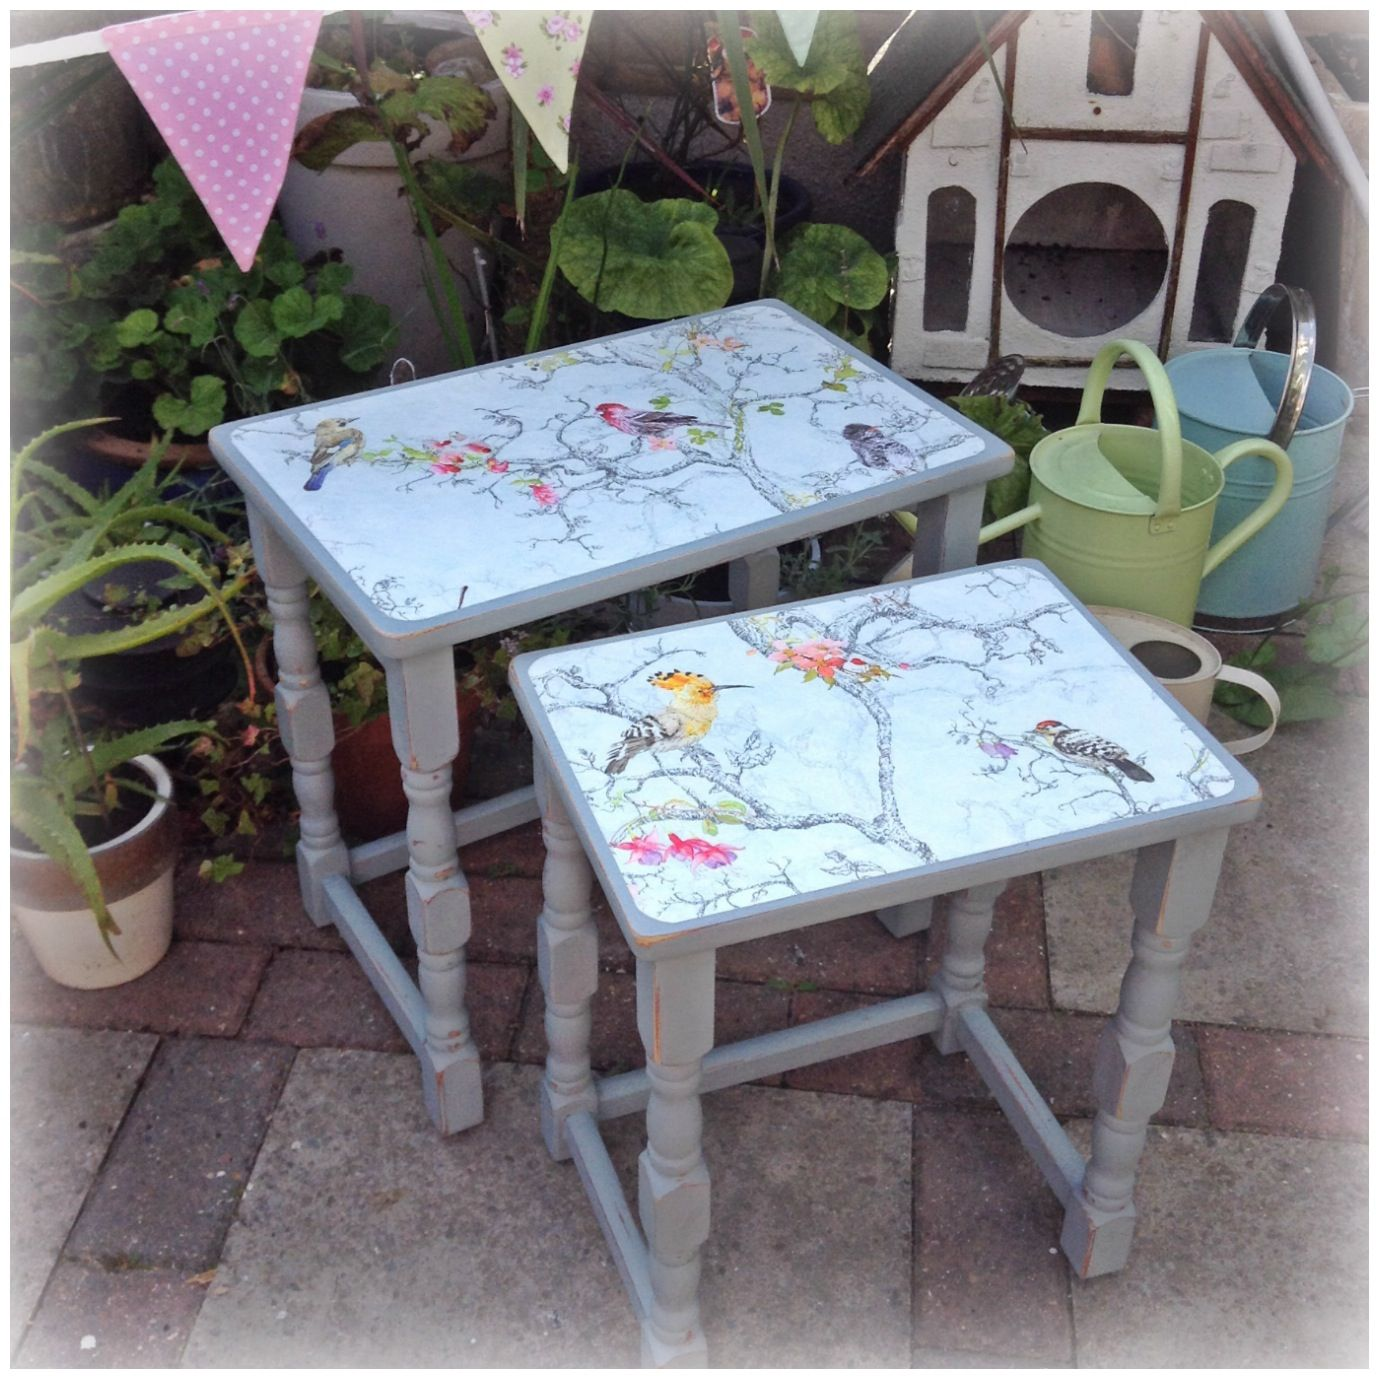 End Table Paint Ideas Nest Of Tables Painted In Chalk Paint With Bird Print Decoupage